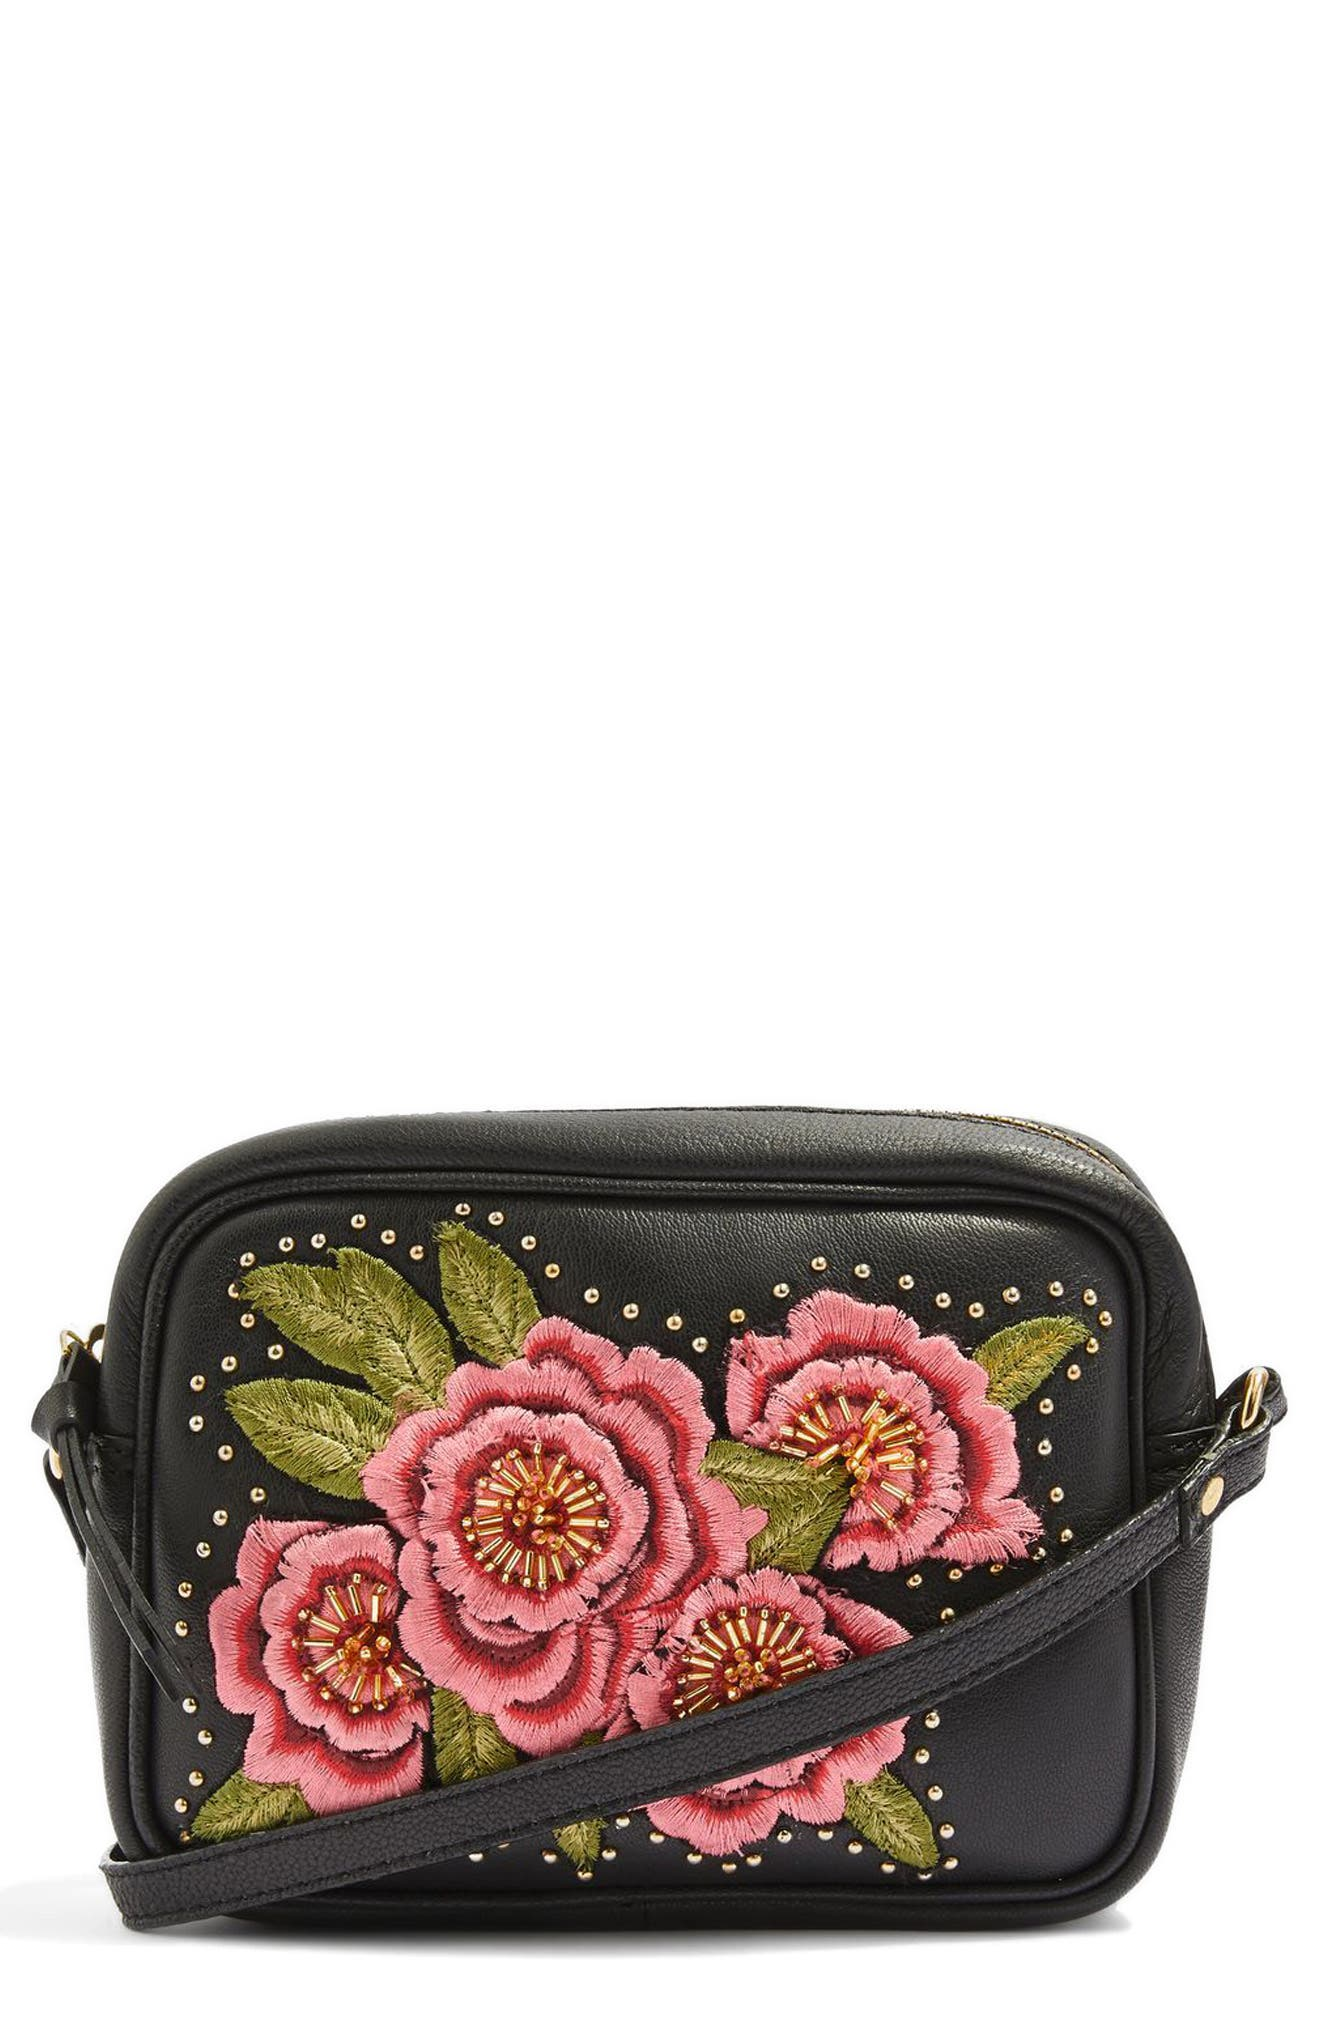 Floral Embroidered Leather Crossbody Bag,                             Main thumbnail 1, color,                             Black Multi